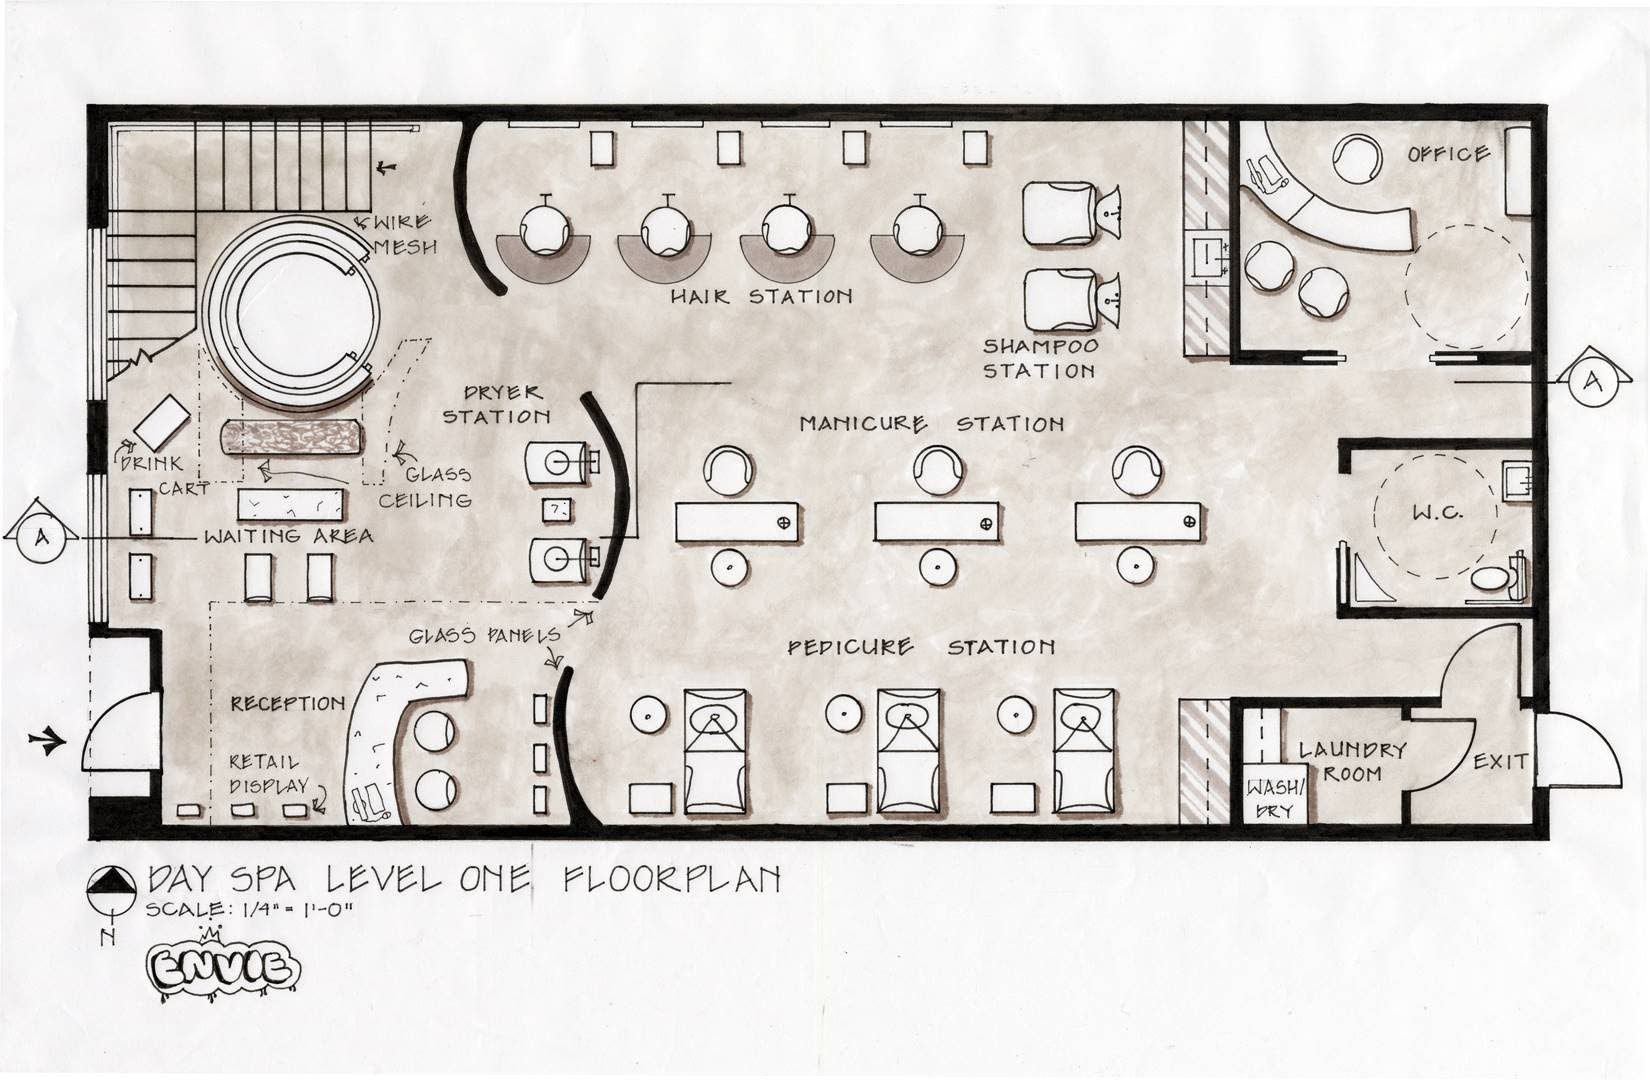 Day spa architectural design day spa salon design and for Sauna layouts floor plans